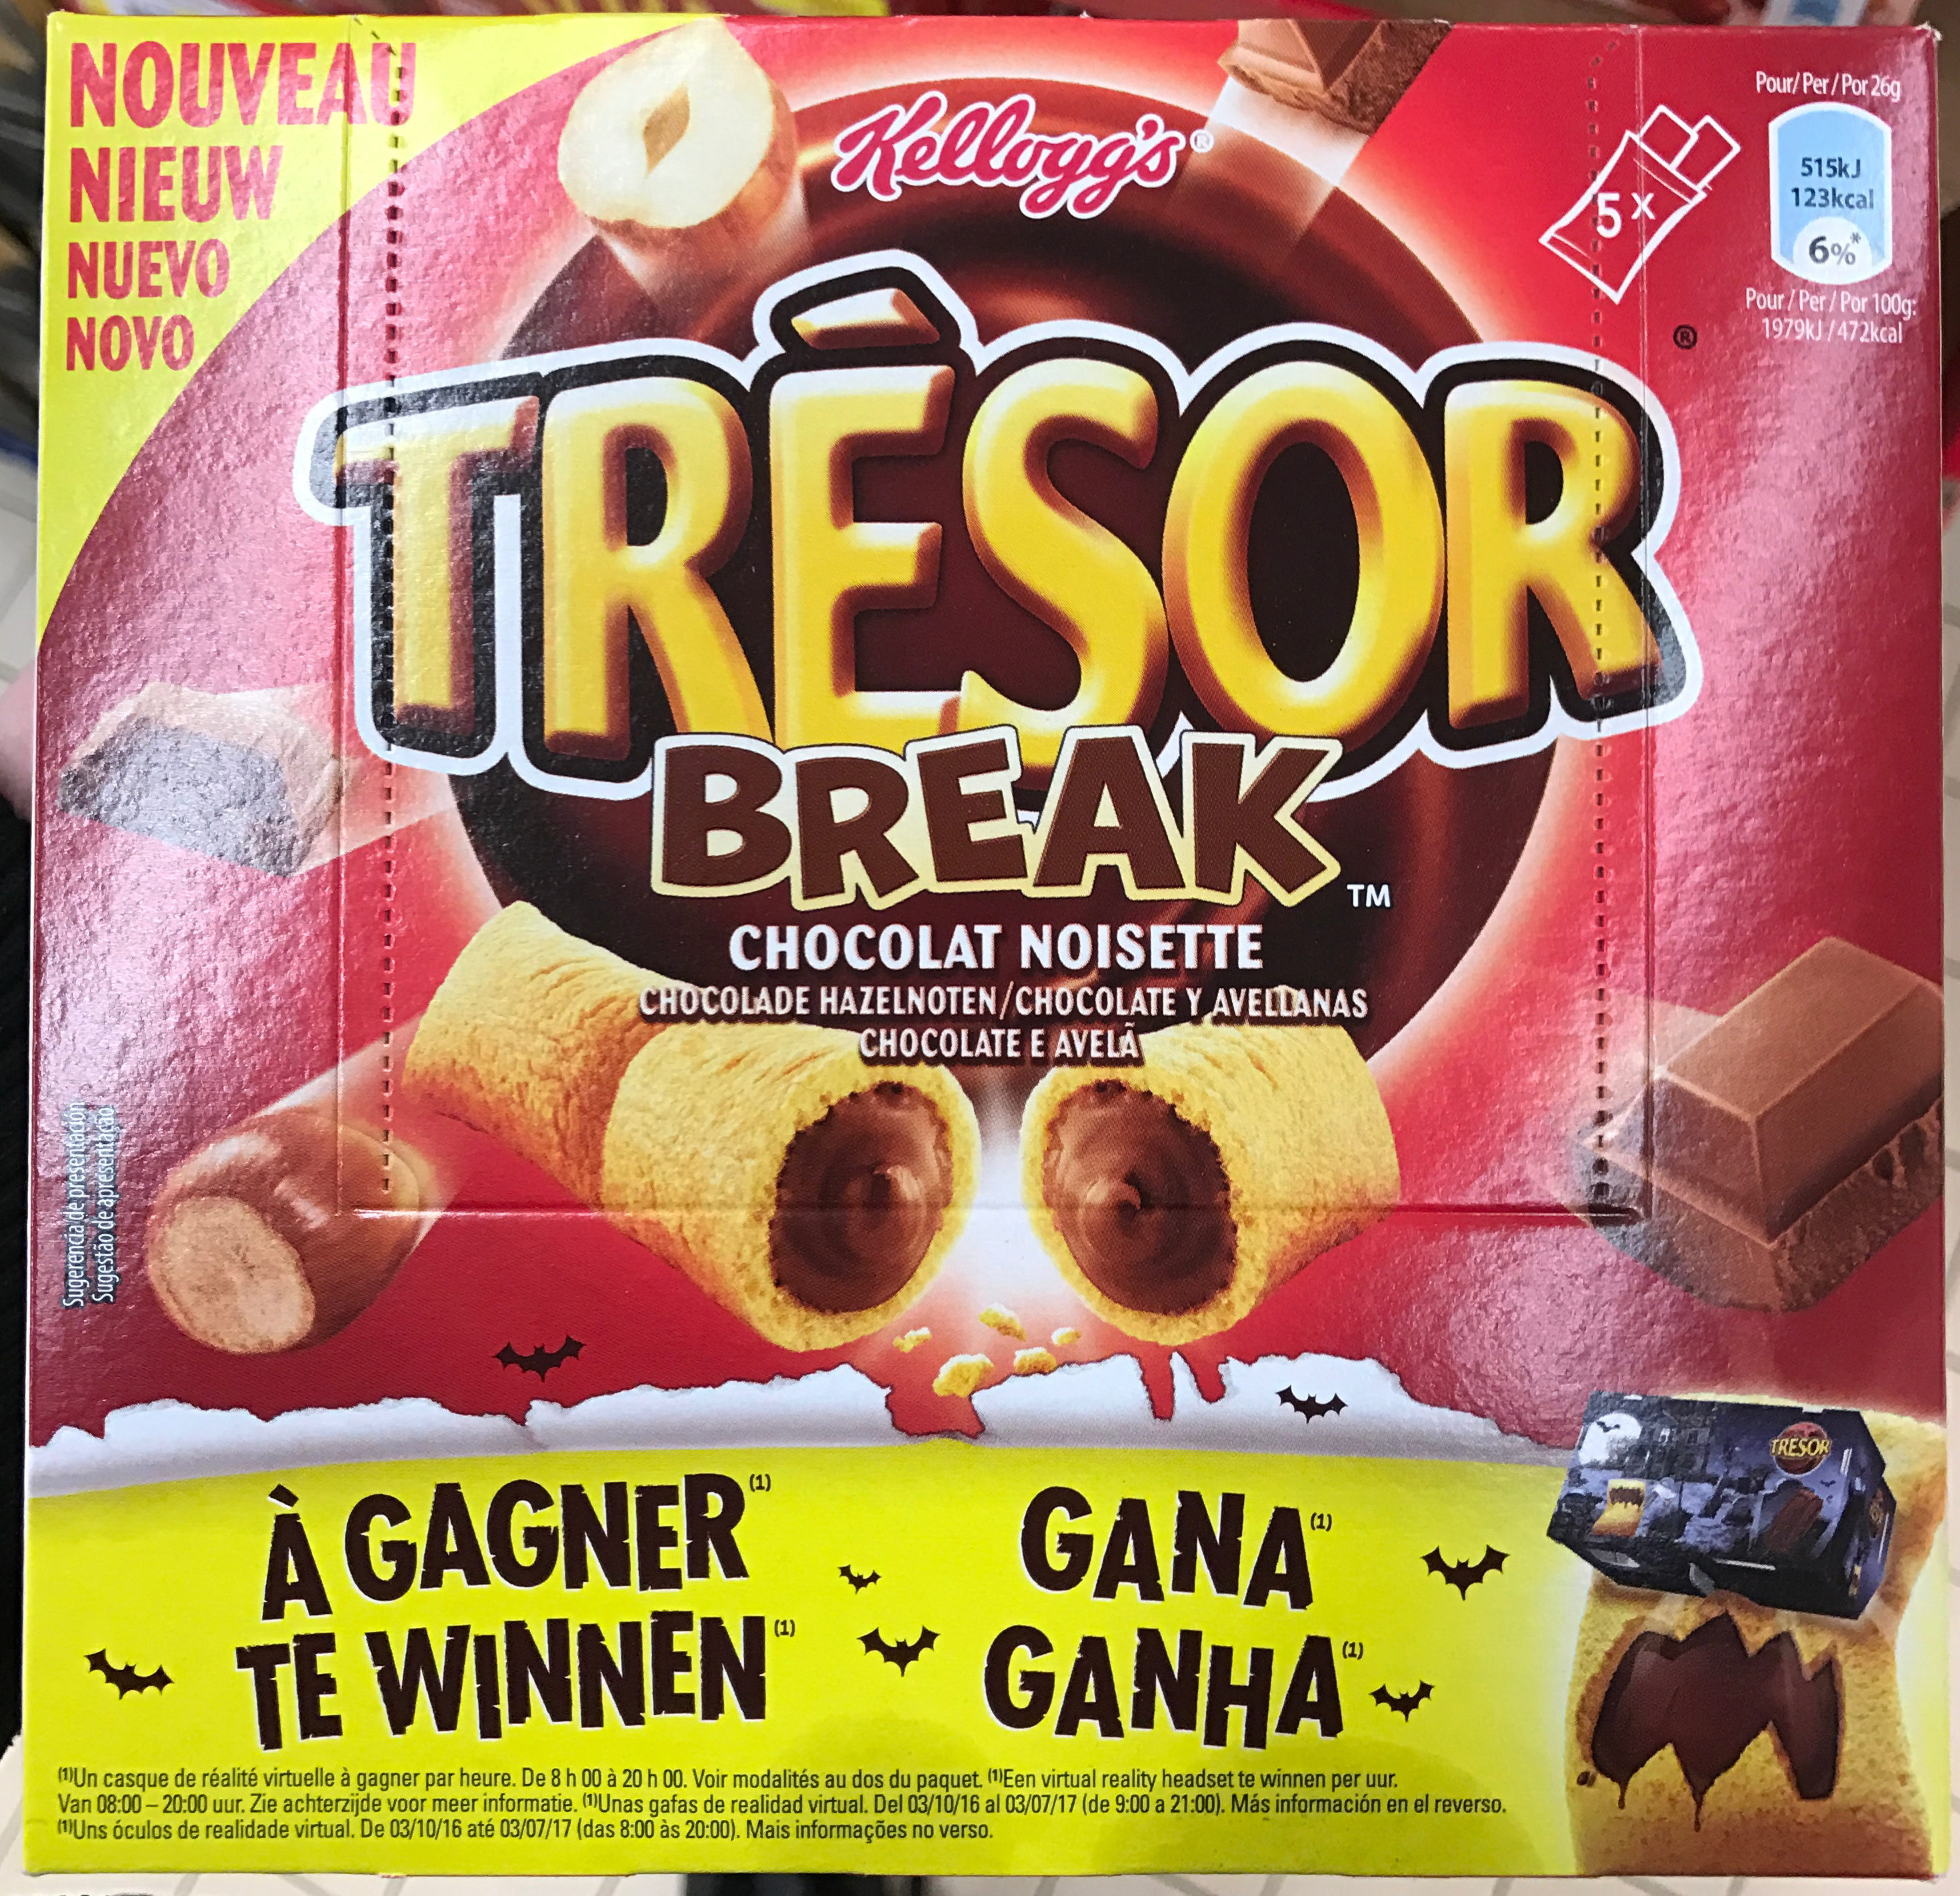 Trésor break Chocolat Noisette - Product - fr